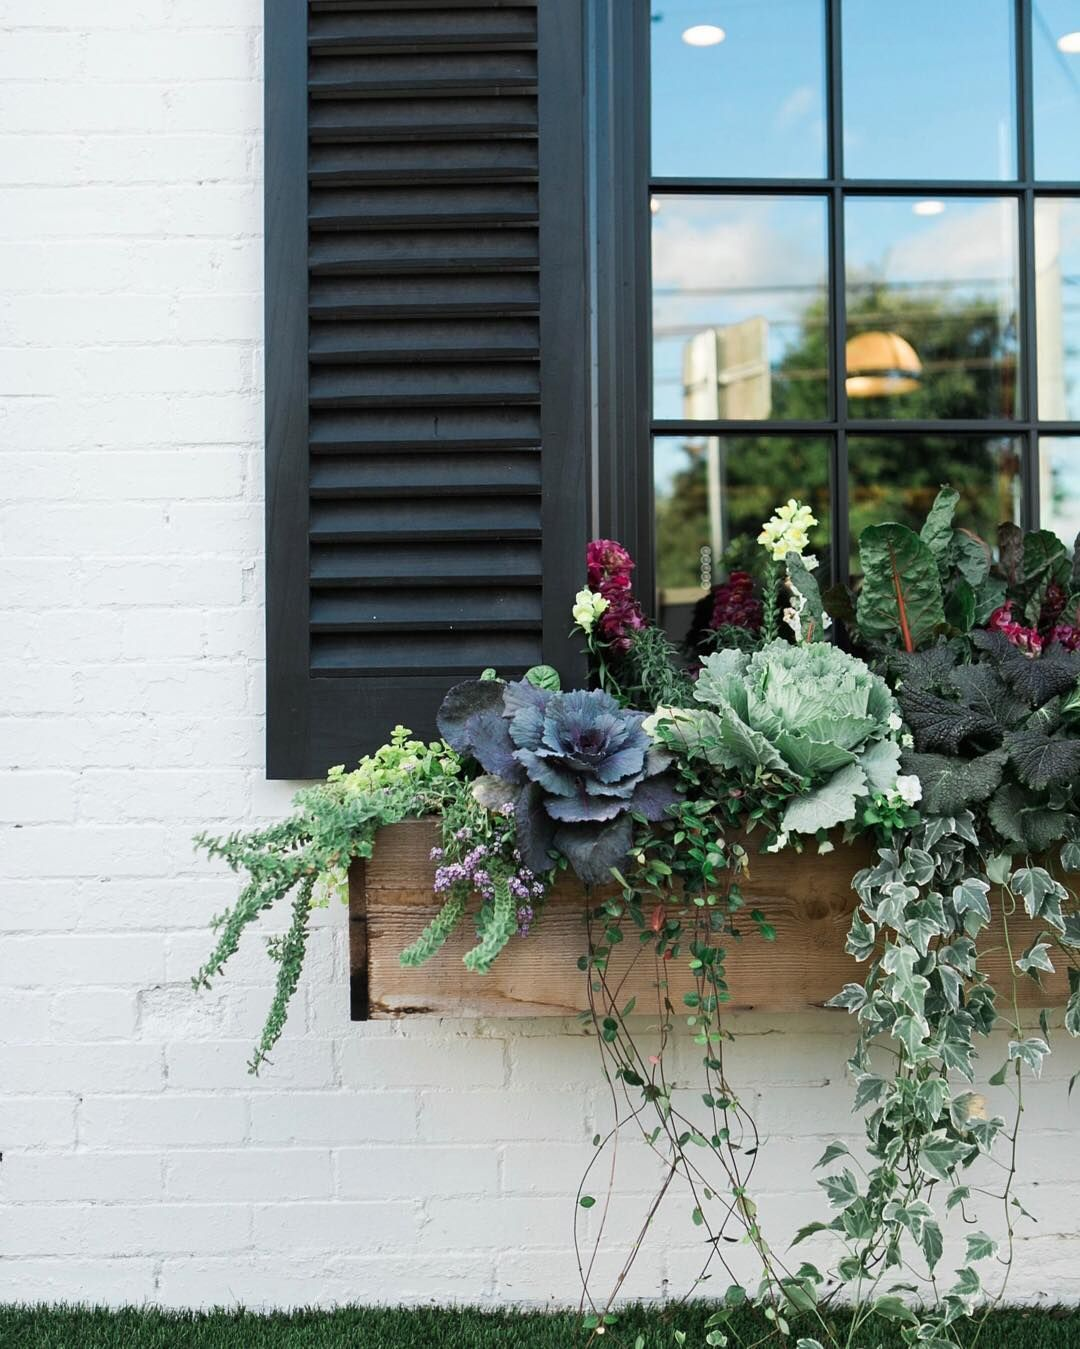 Window box ideas without flowers   window box planter ideas to style up your home or apartment